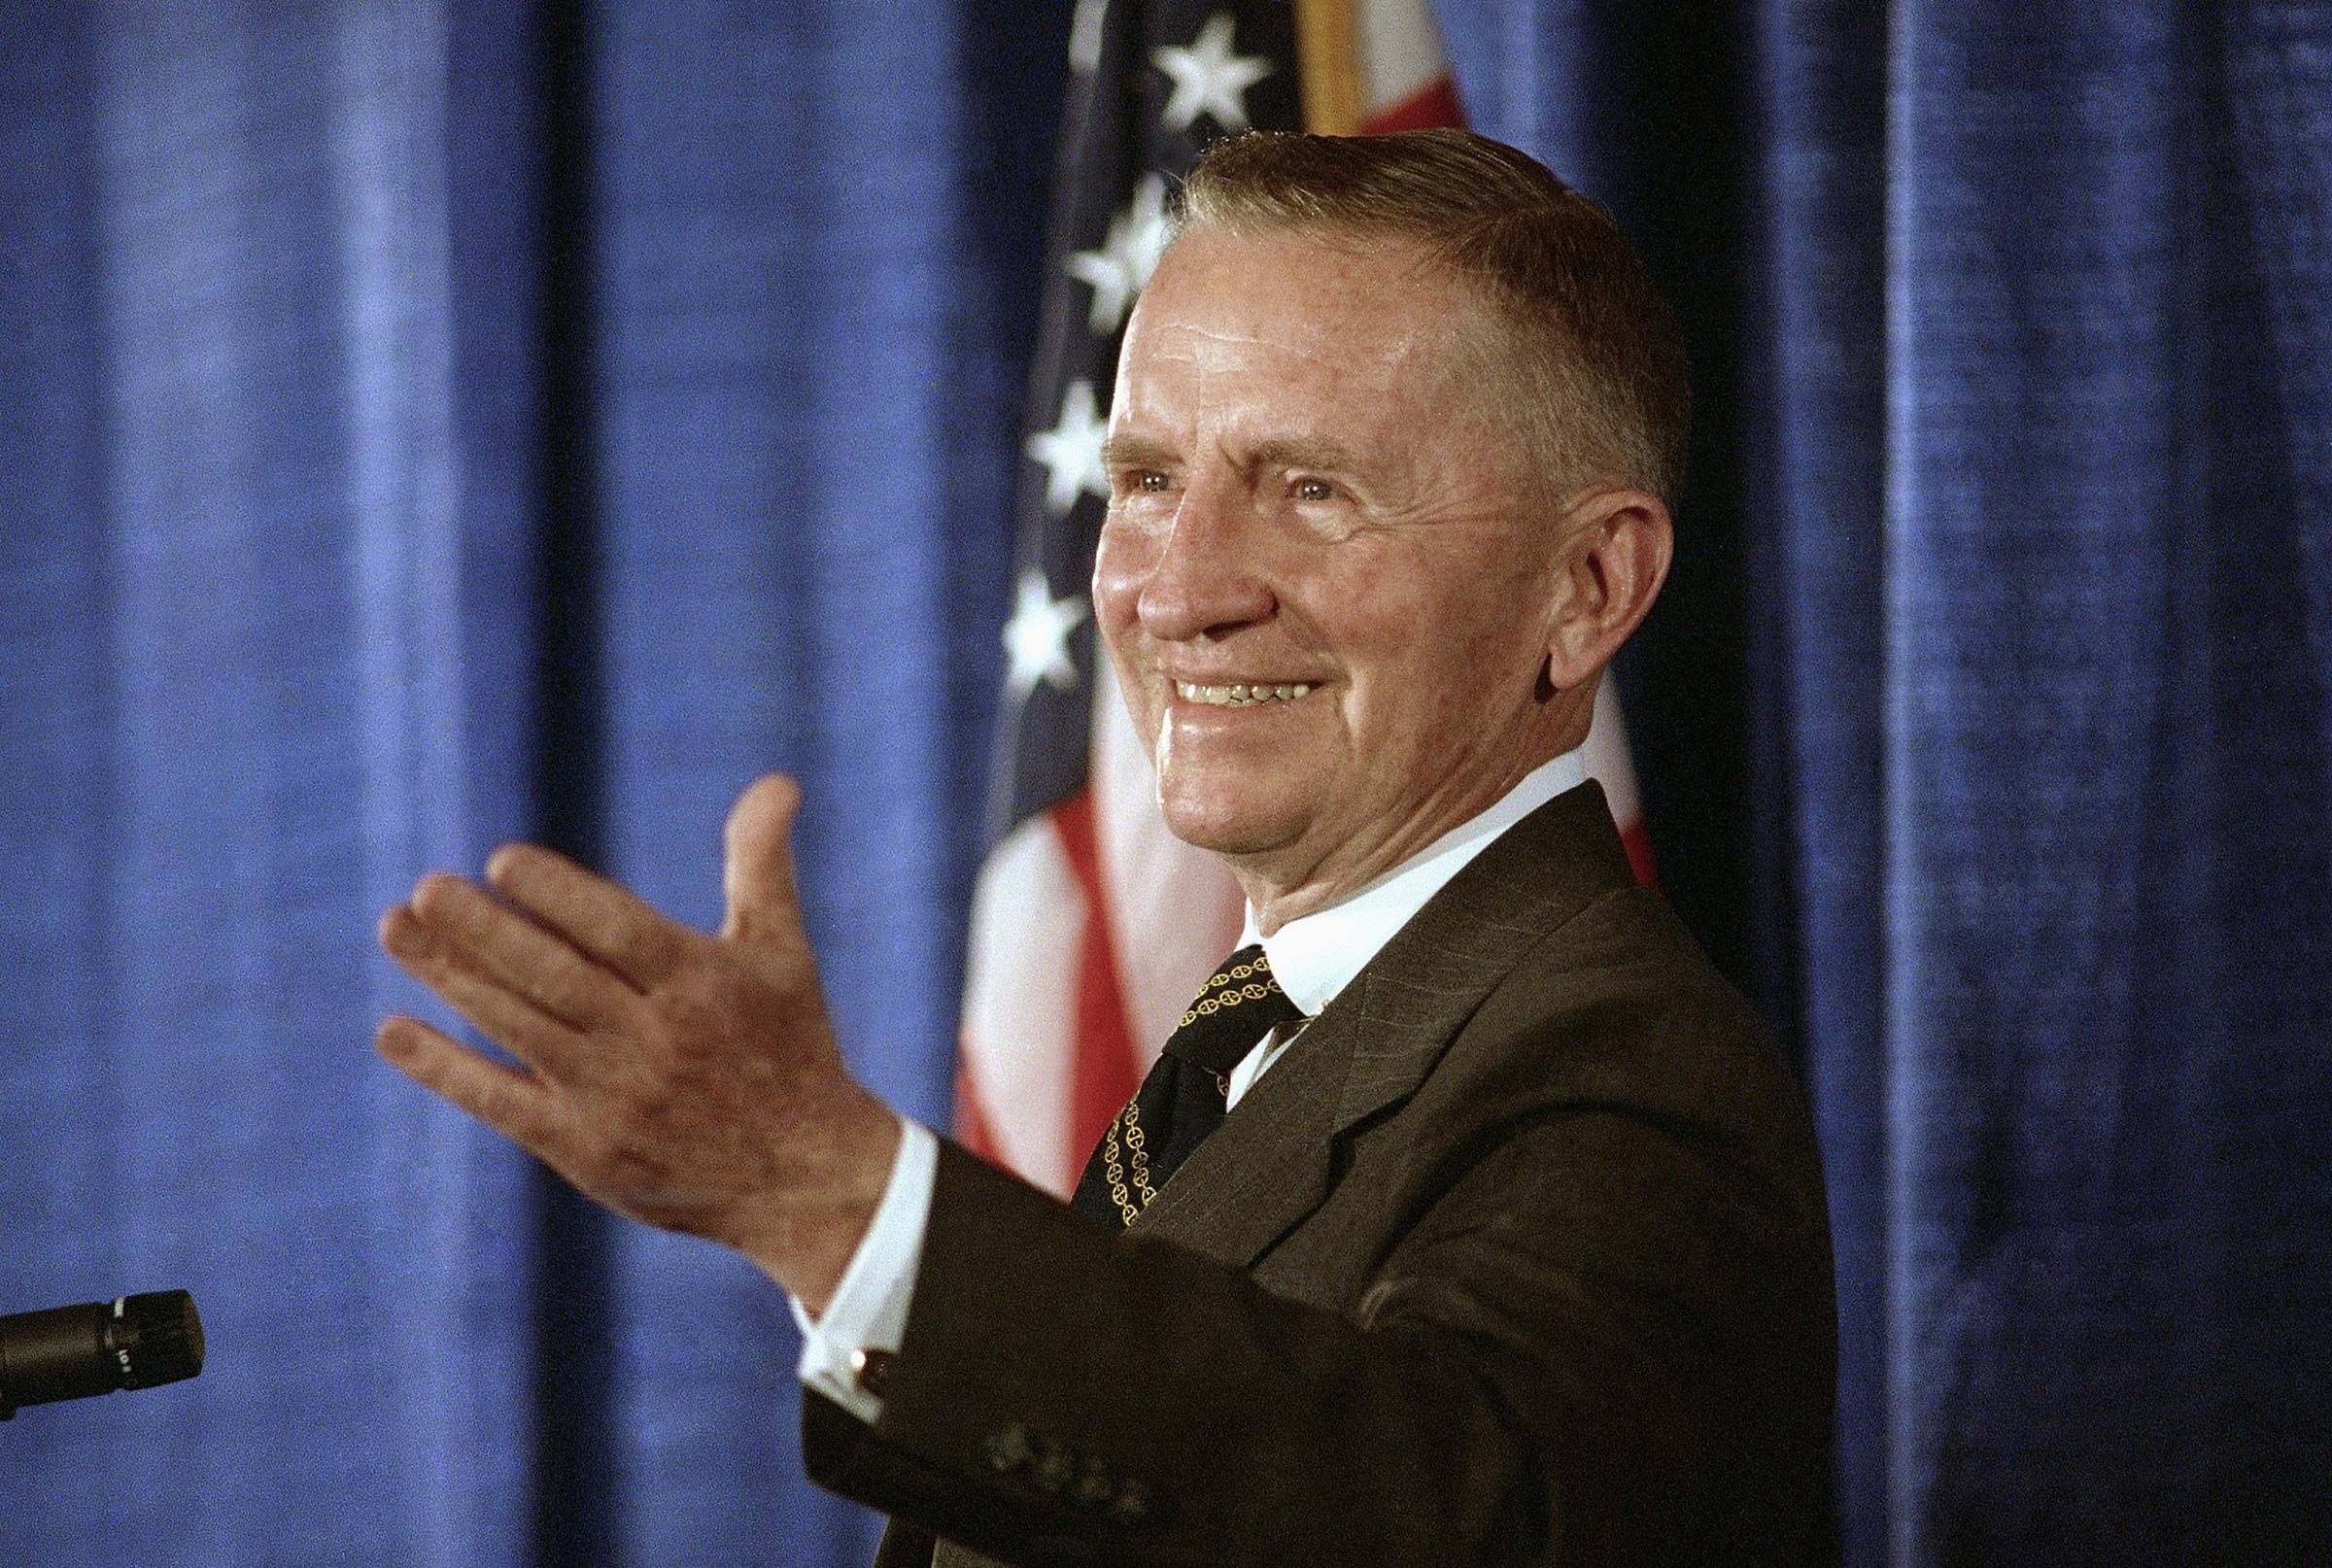 Perot speaks to the press in June 1992; the Texas billionaire ran for President that year as well as in 1996.